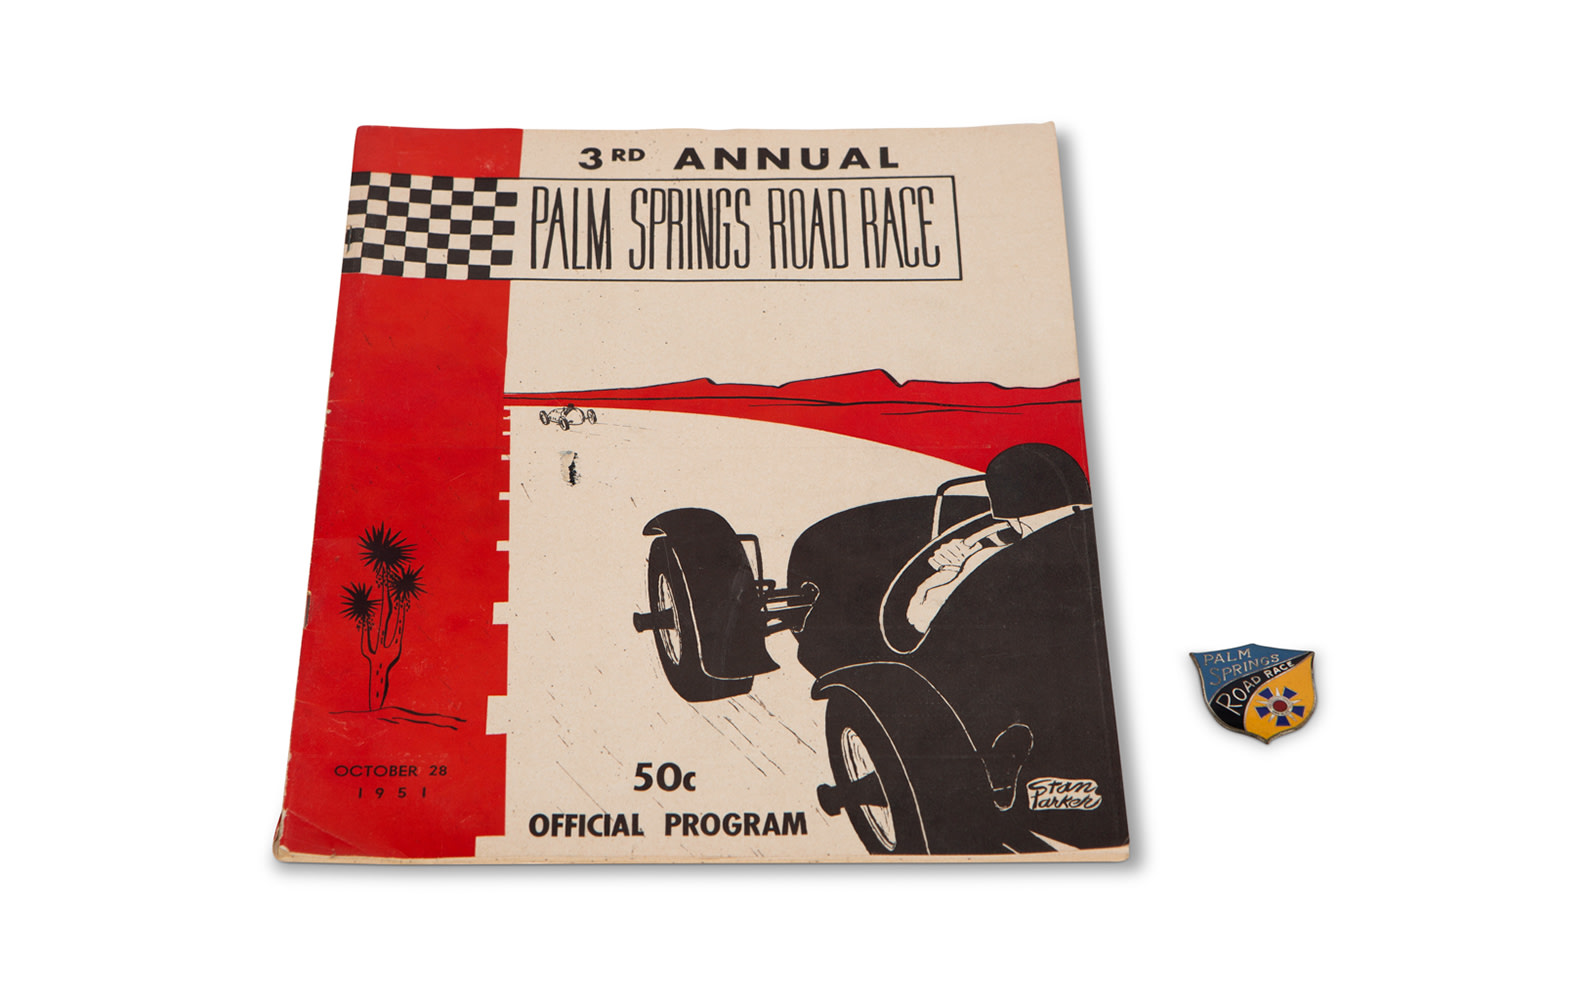 1951 Palm Springs Road Race Official Program and California Sports Car Club Badge